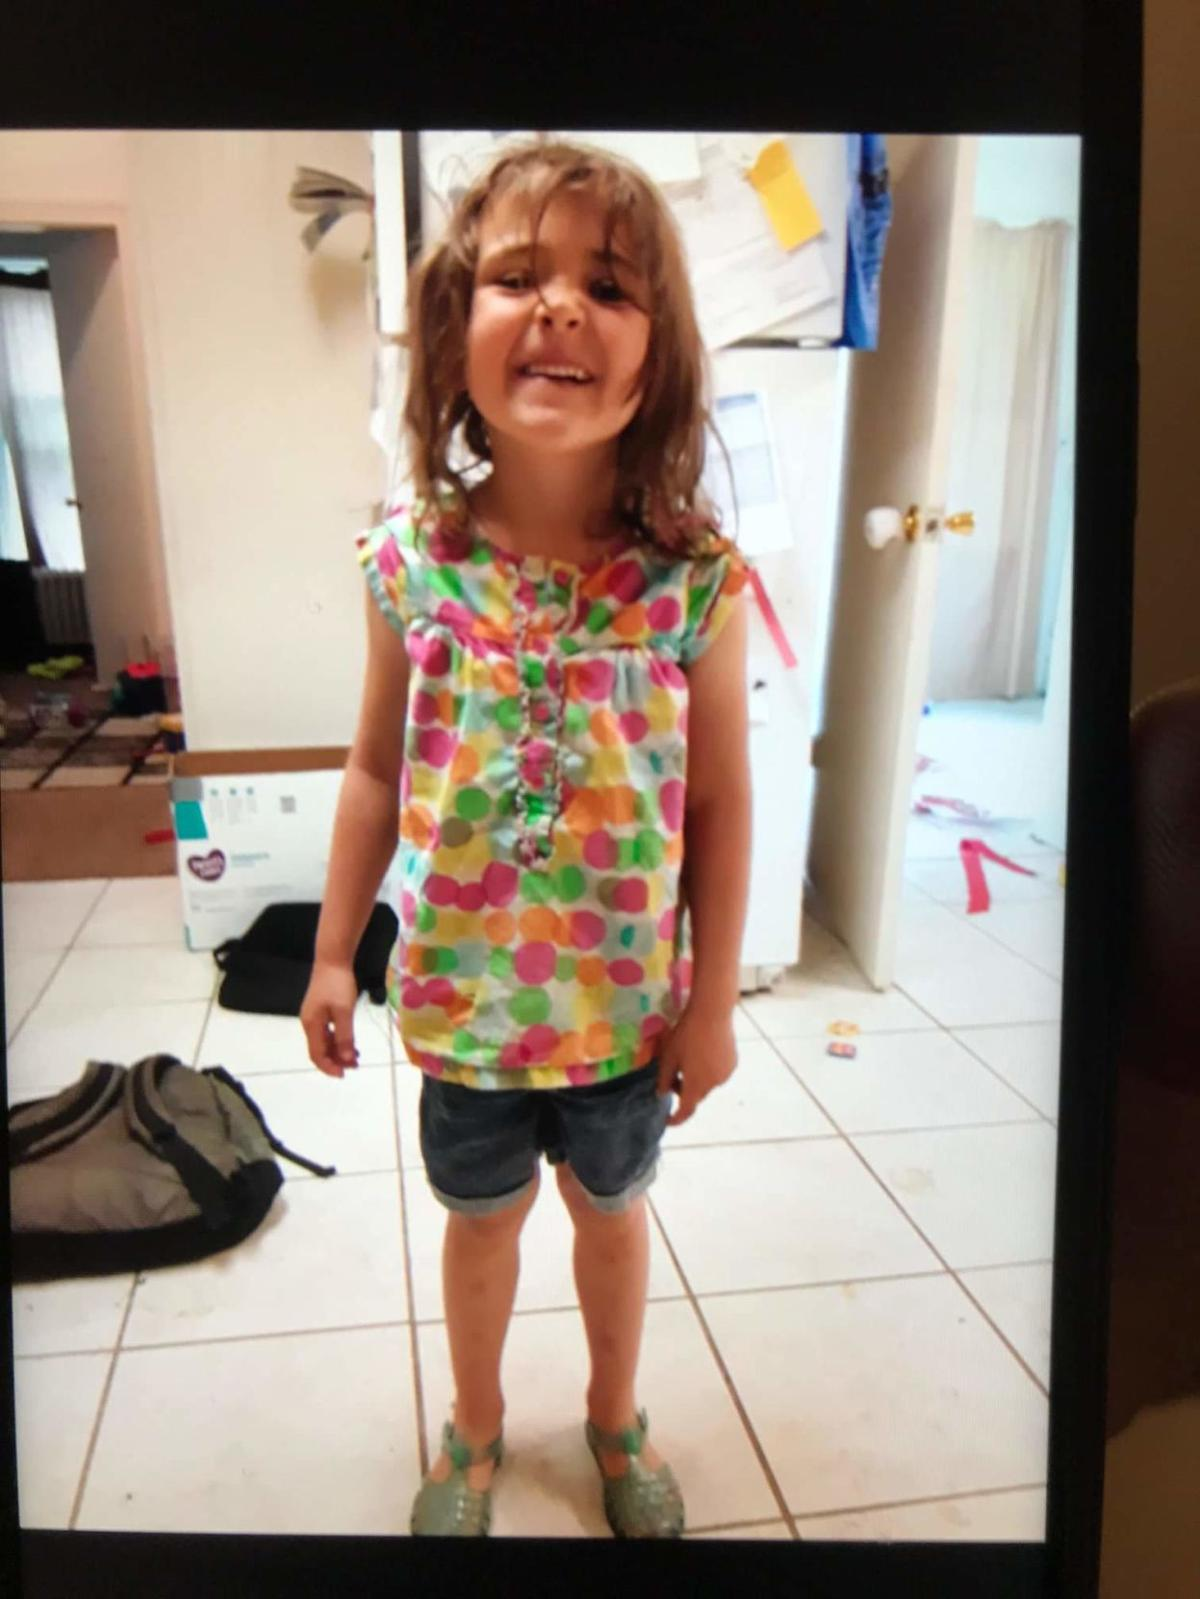 Missing 5 year old